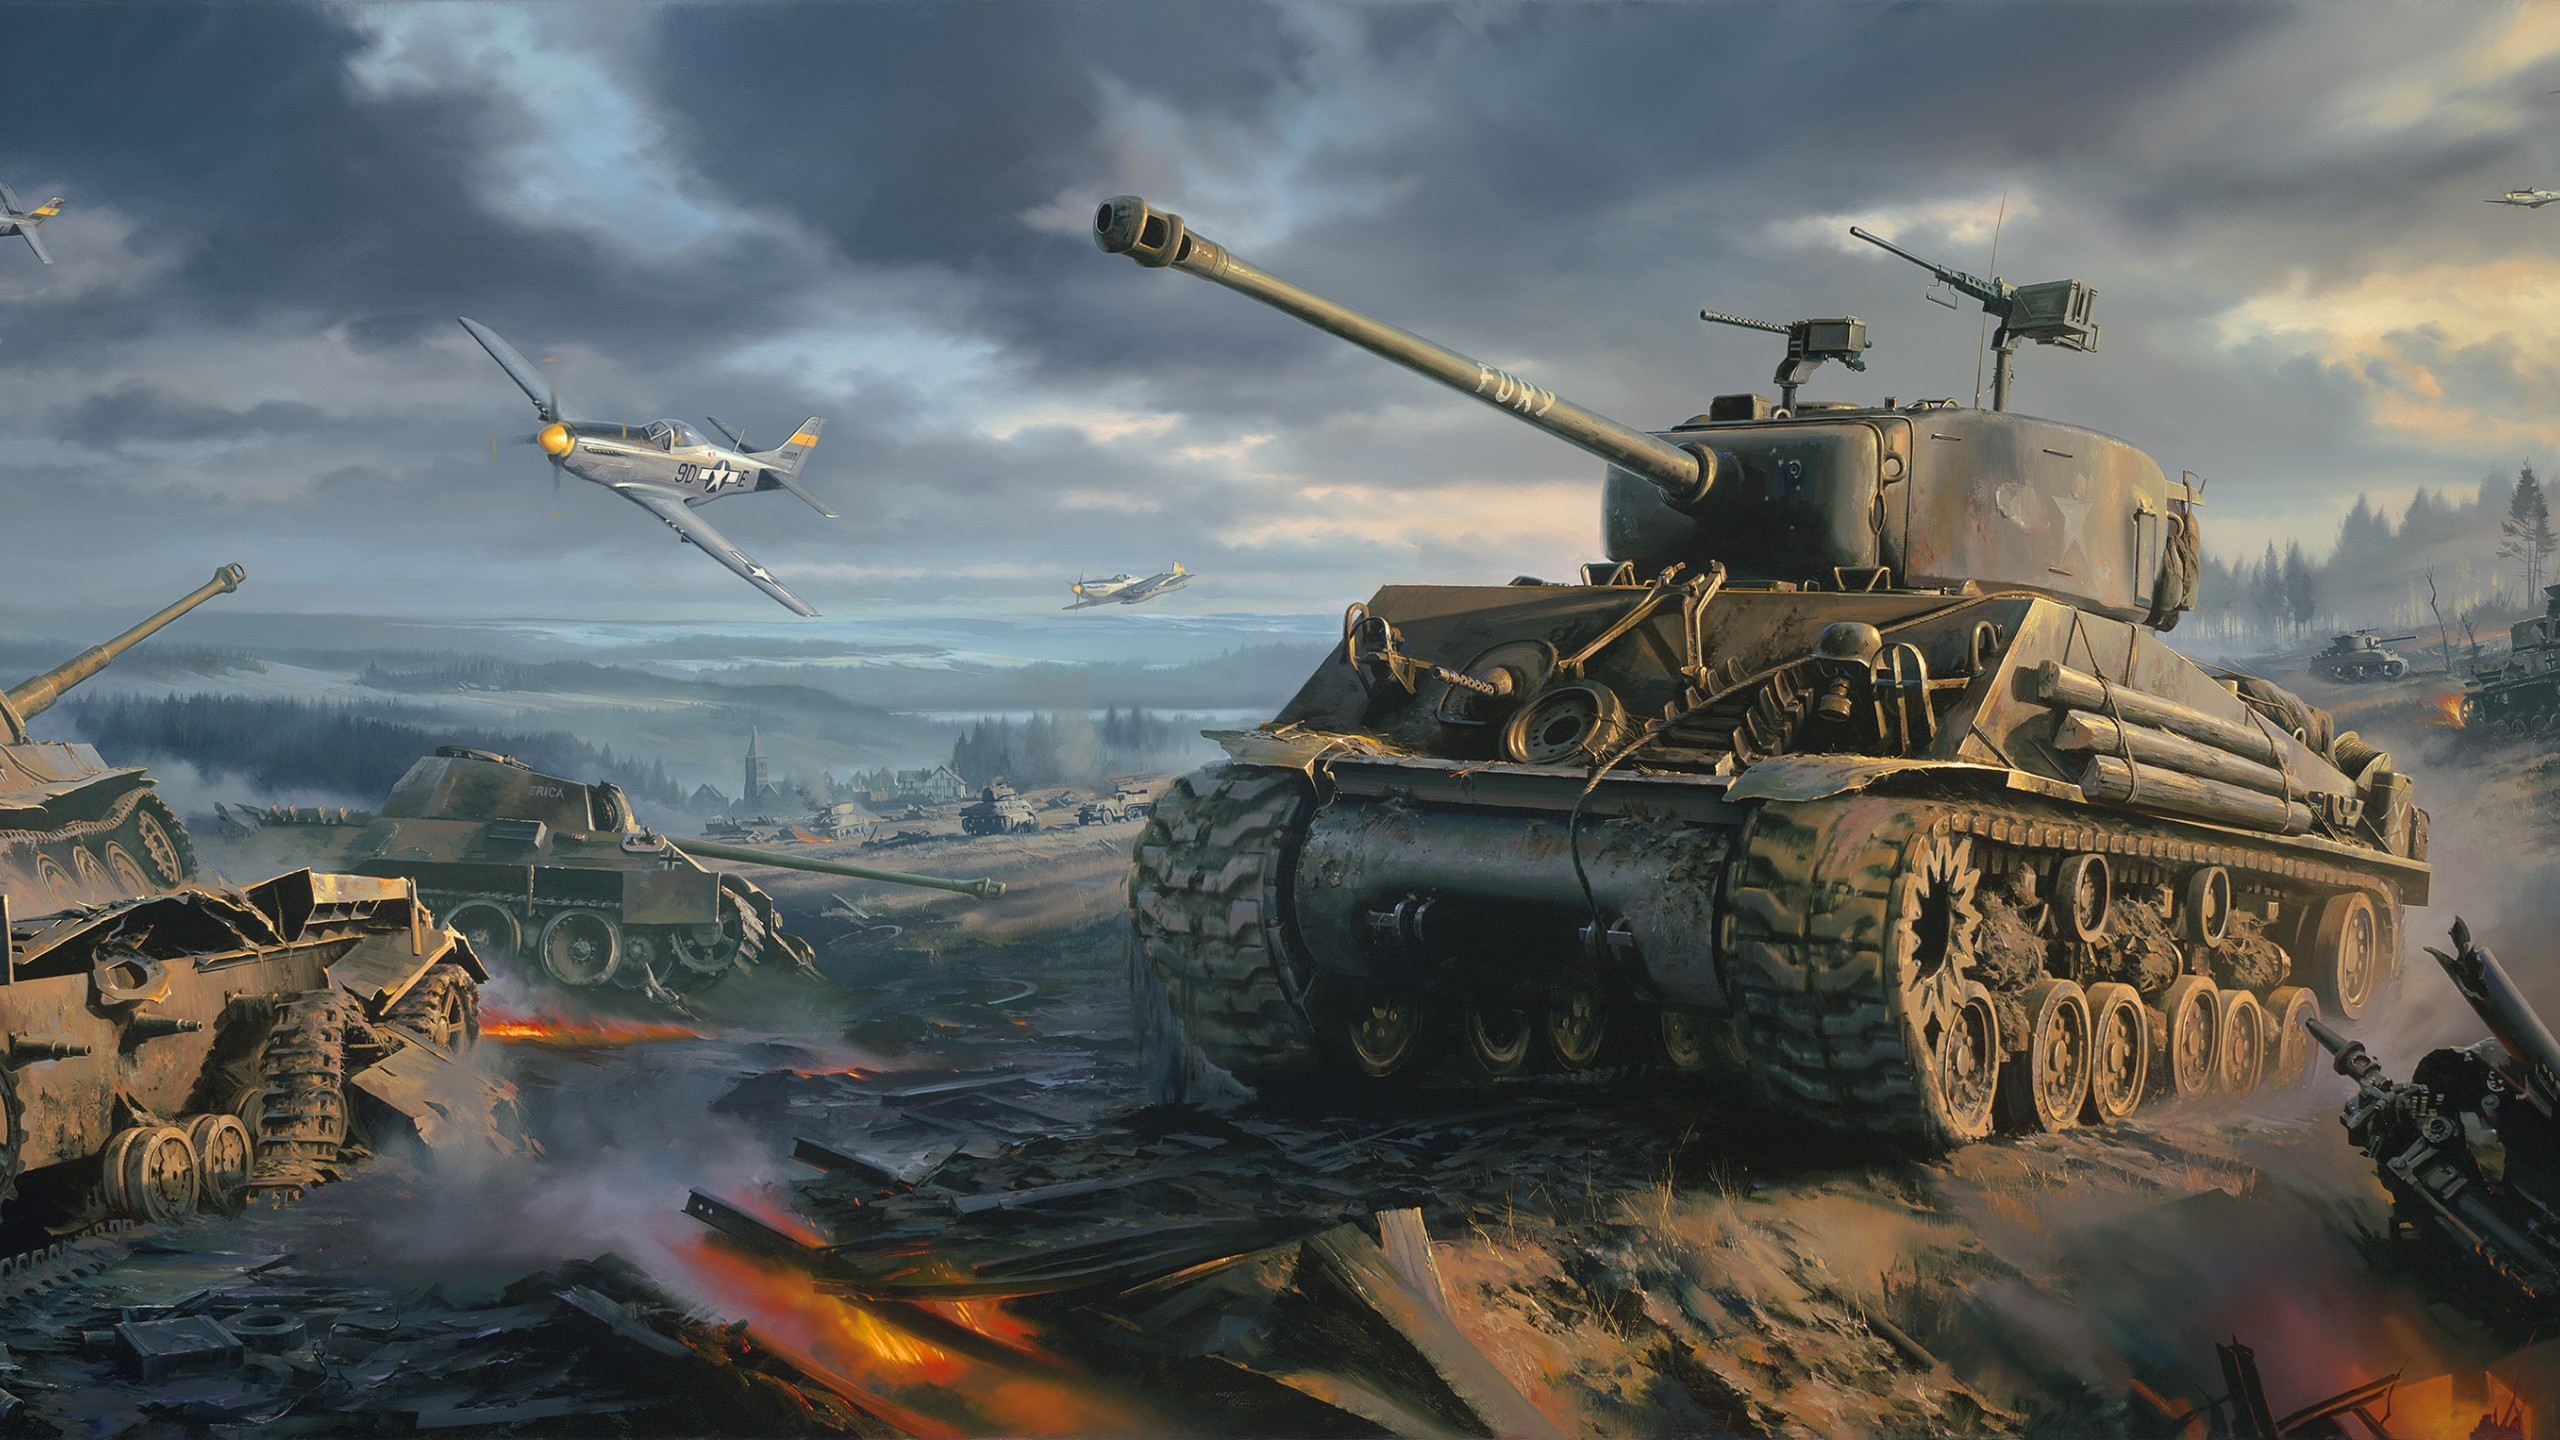 10 New Us Army Infantry Wallpaper Full Hd 1080p For Pc Desktop: M4 Sherman Full HD Wallpaper And Background Image